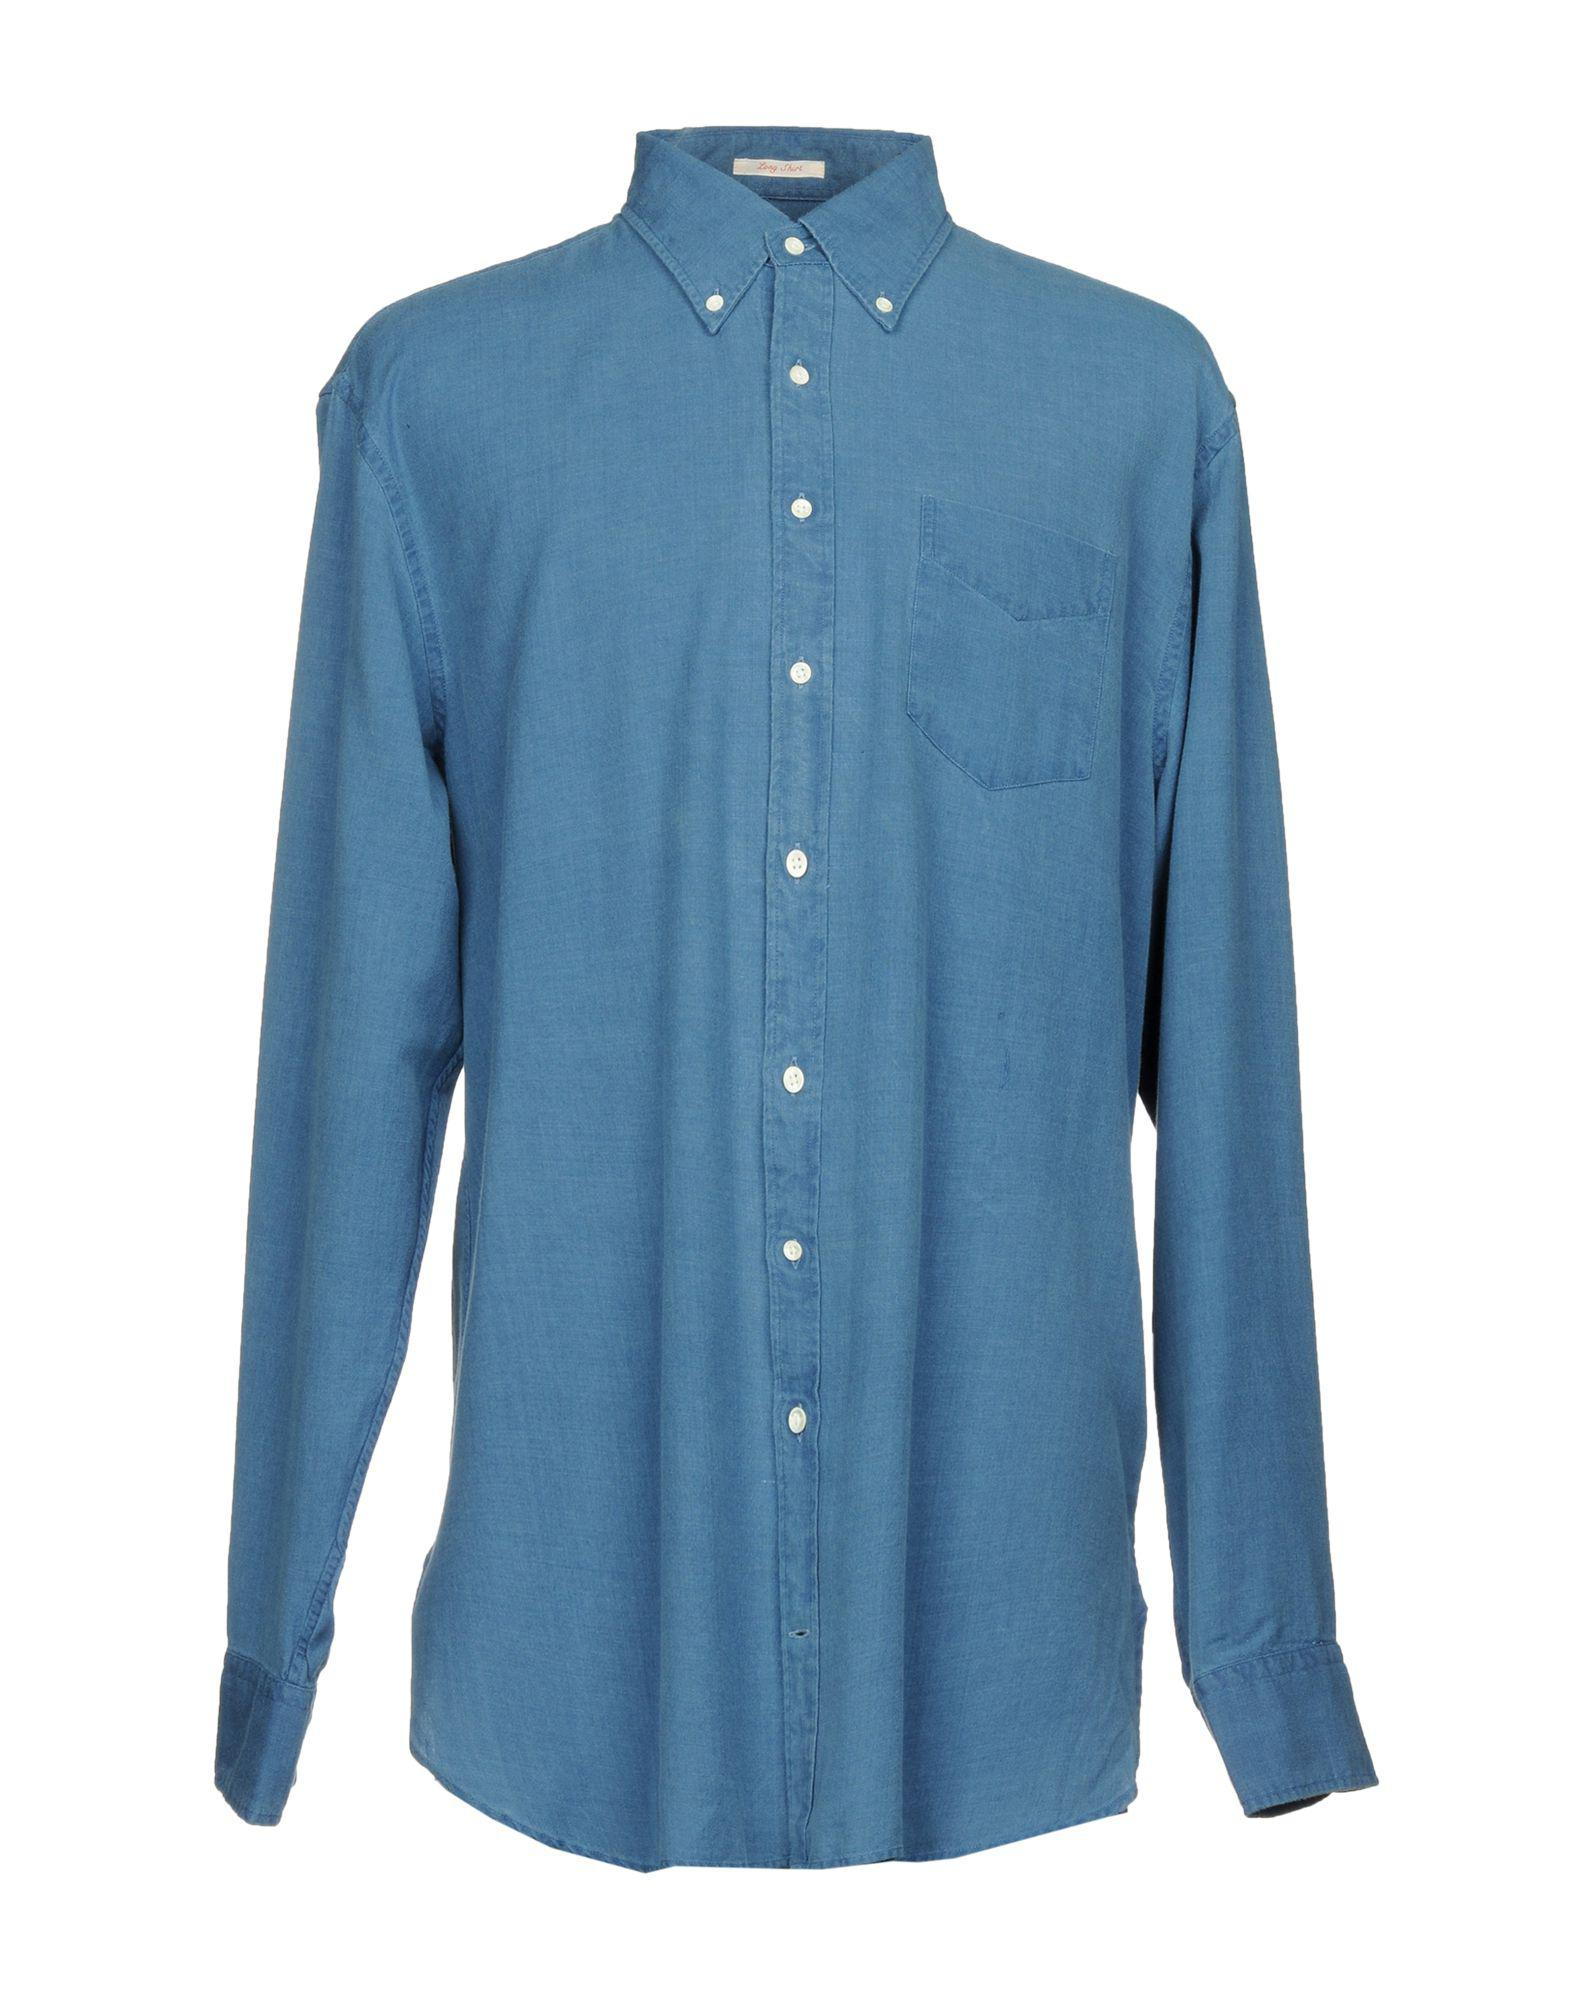 33d6e475154 Lyst - Gant Rugger Shirt in Blue for Men